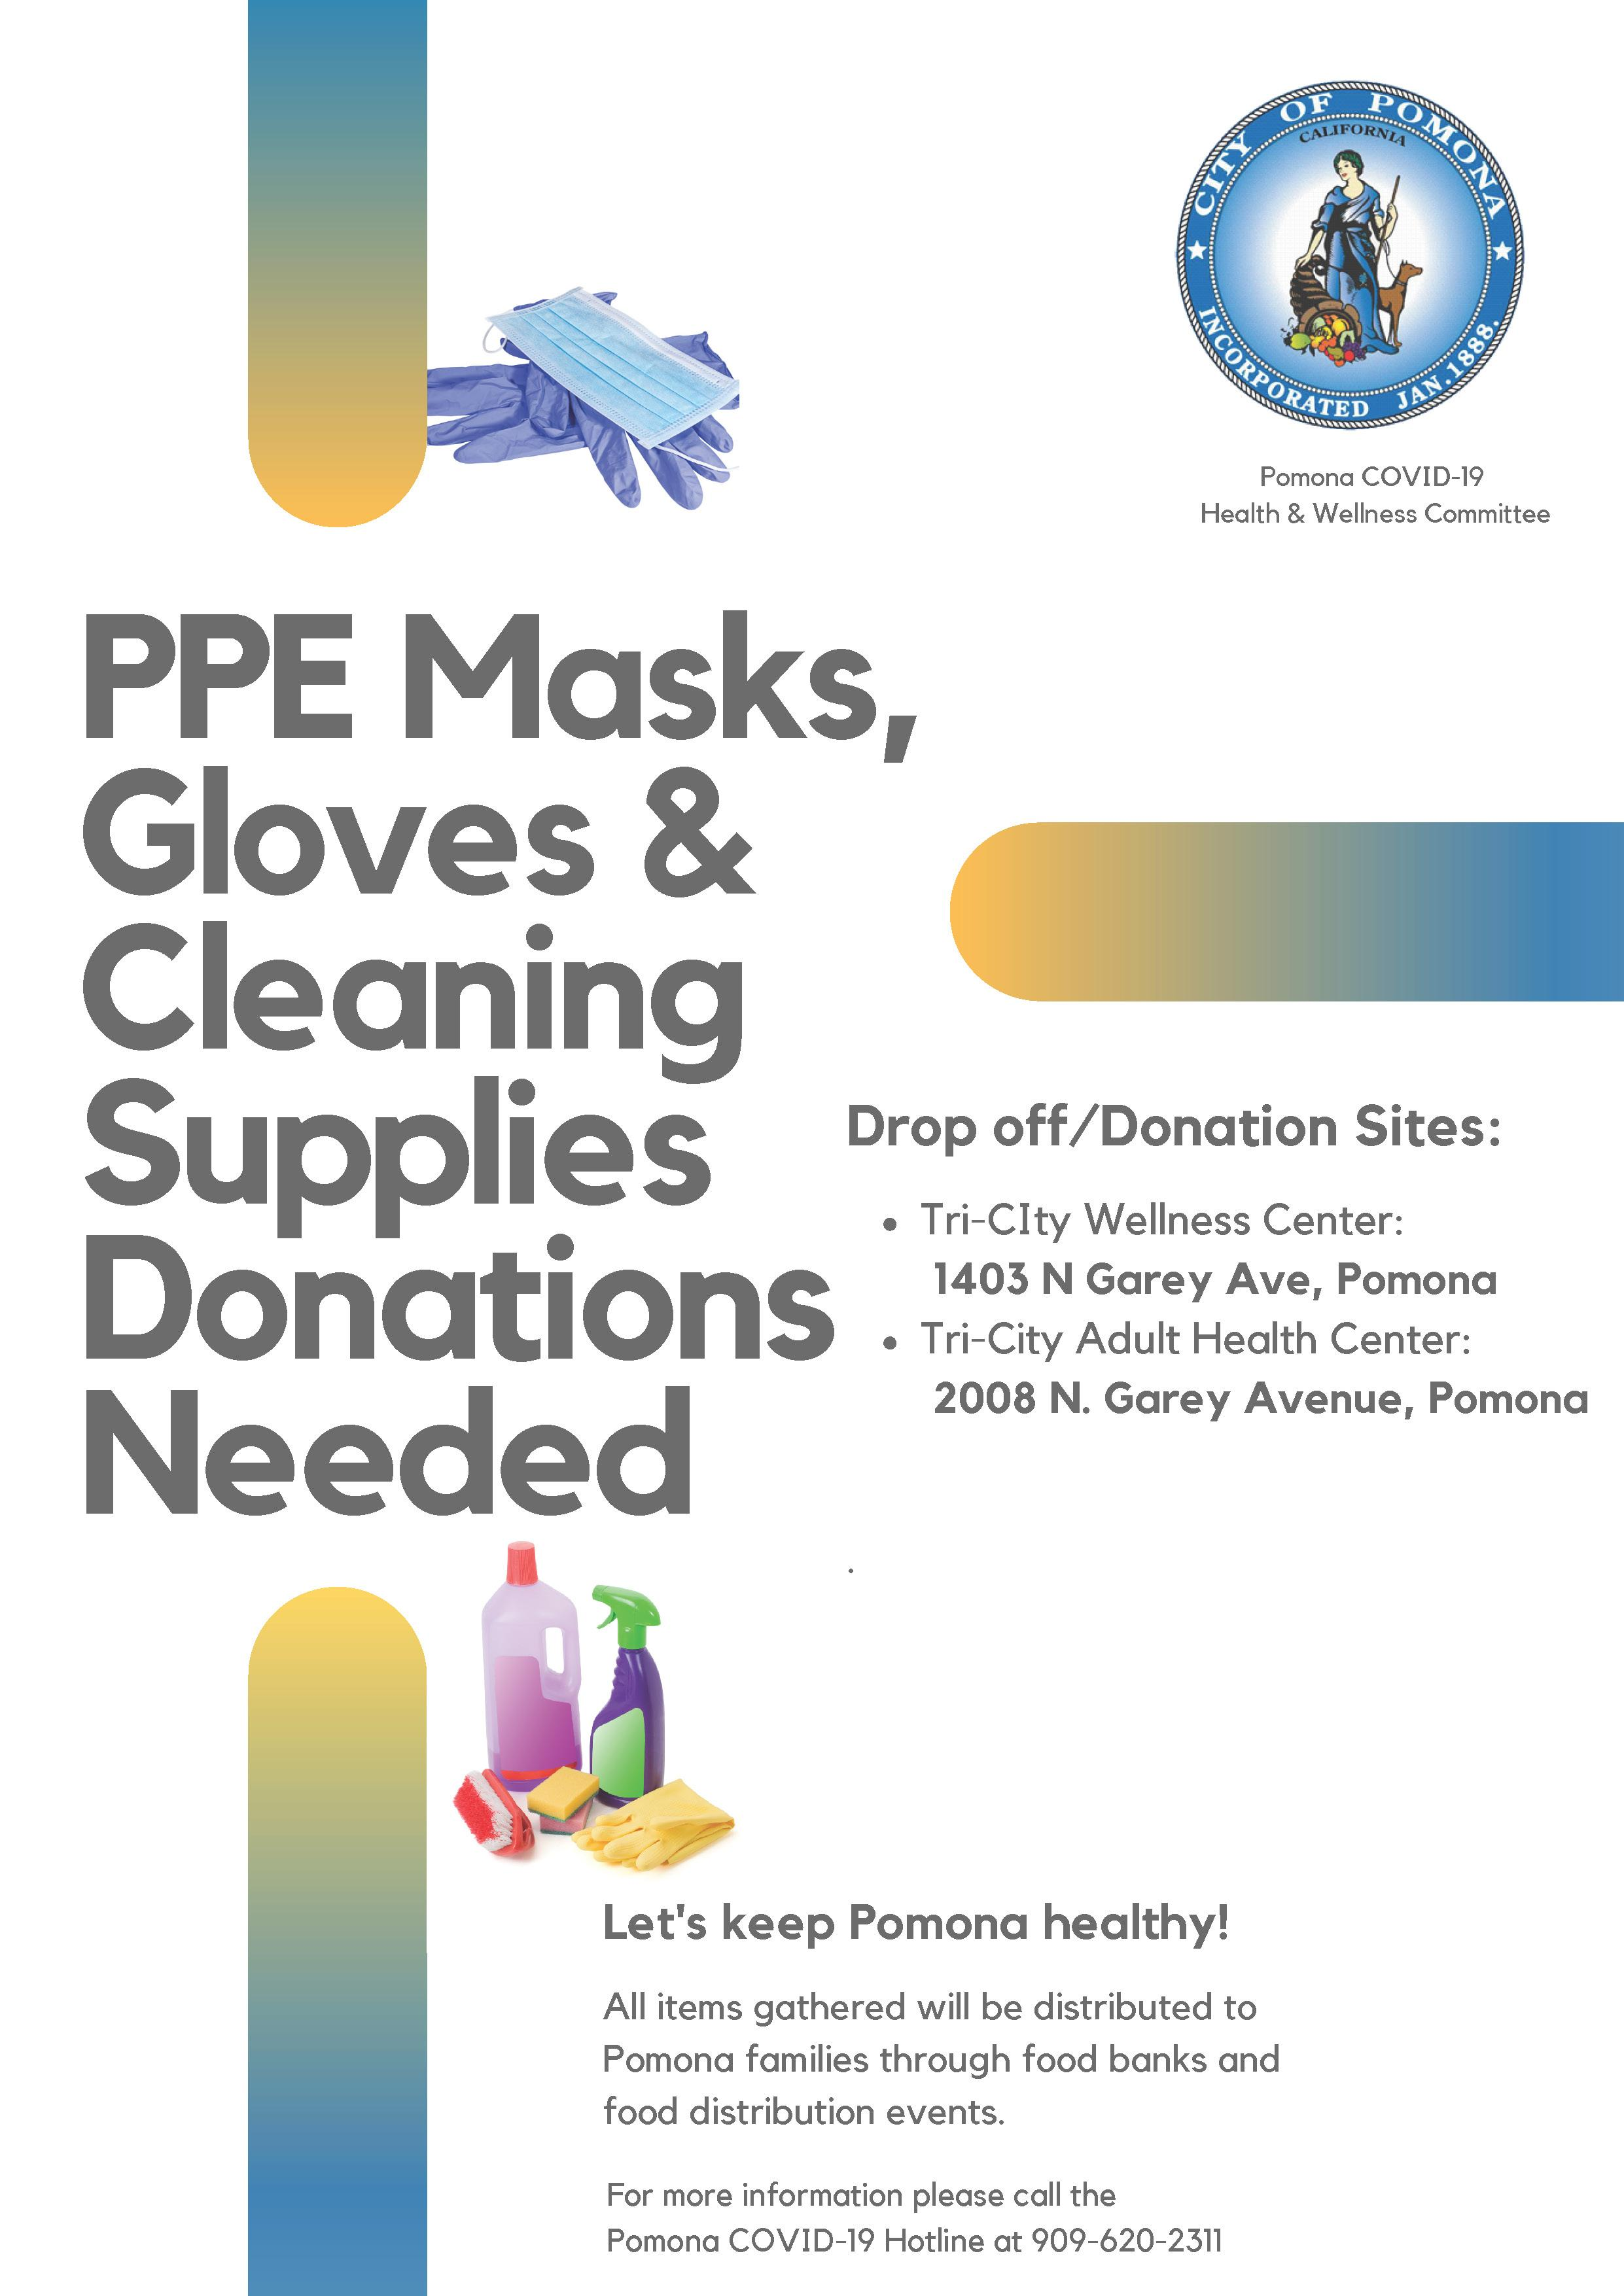 PPE Masks, Gloves & Cleaning Supplies Donations Needed